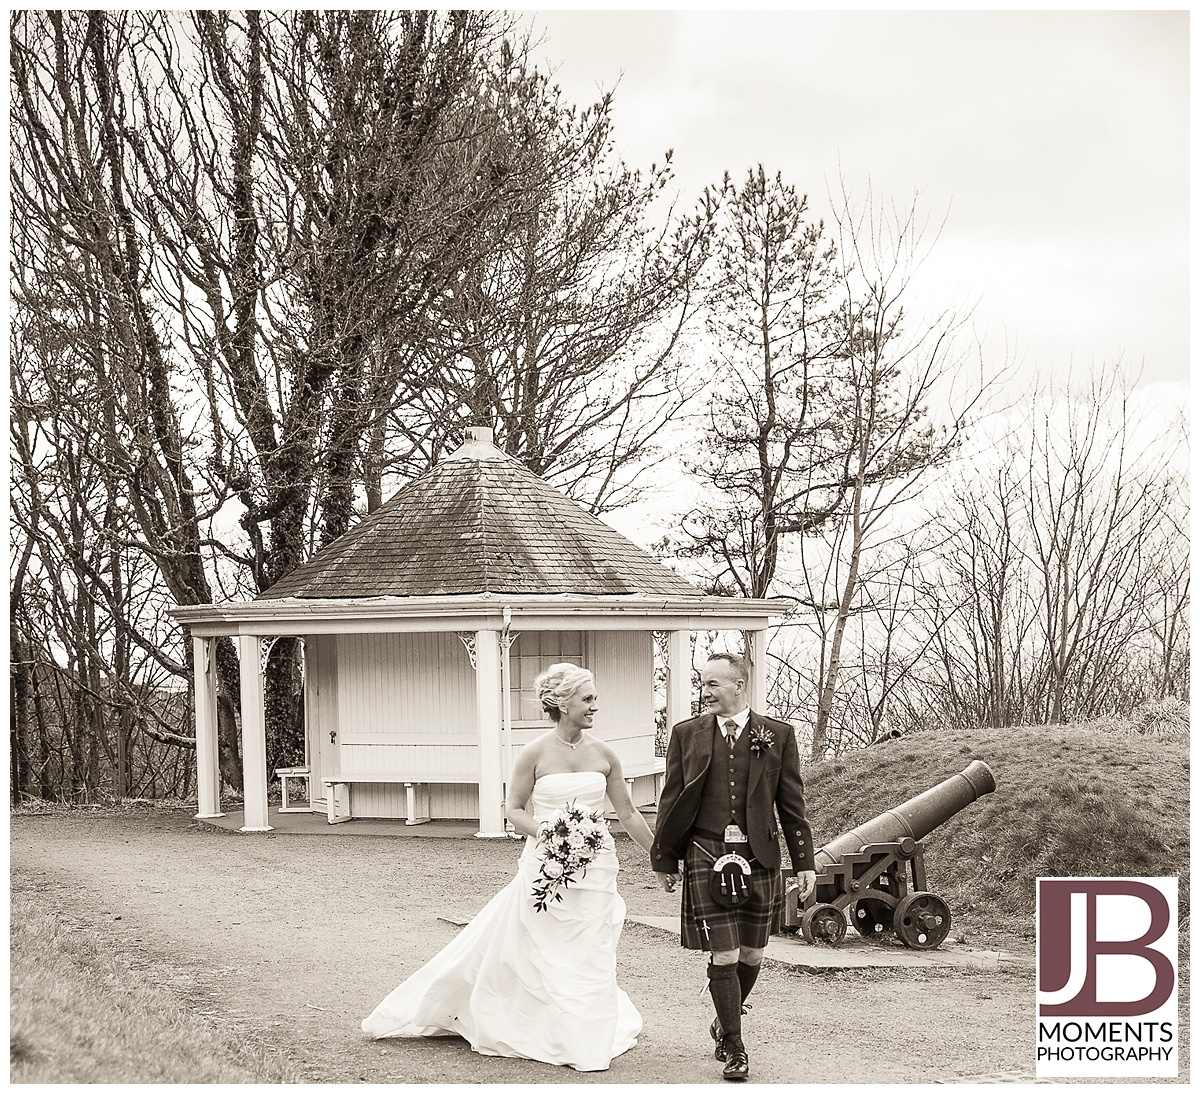 Mast House at Culzean Castle. Wedding photography by JB Moments Photography